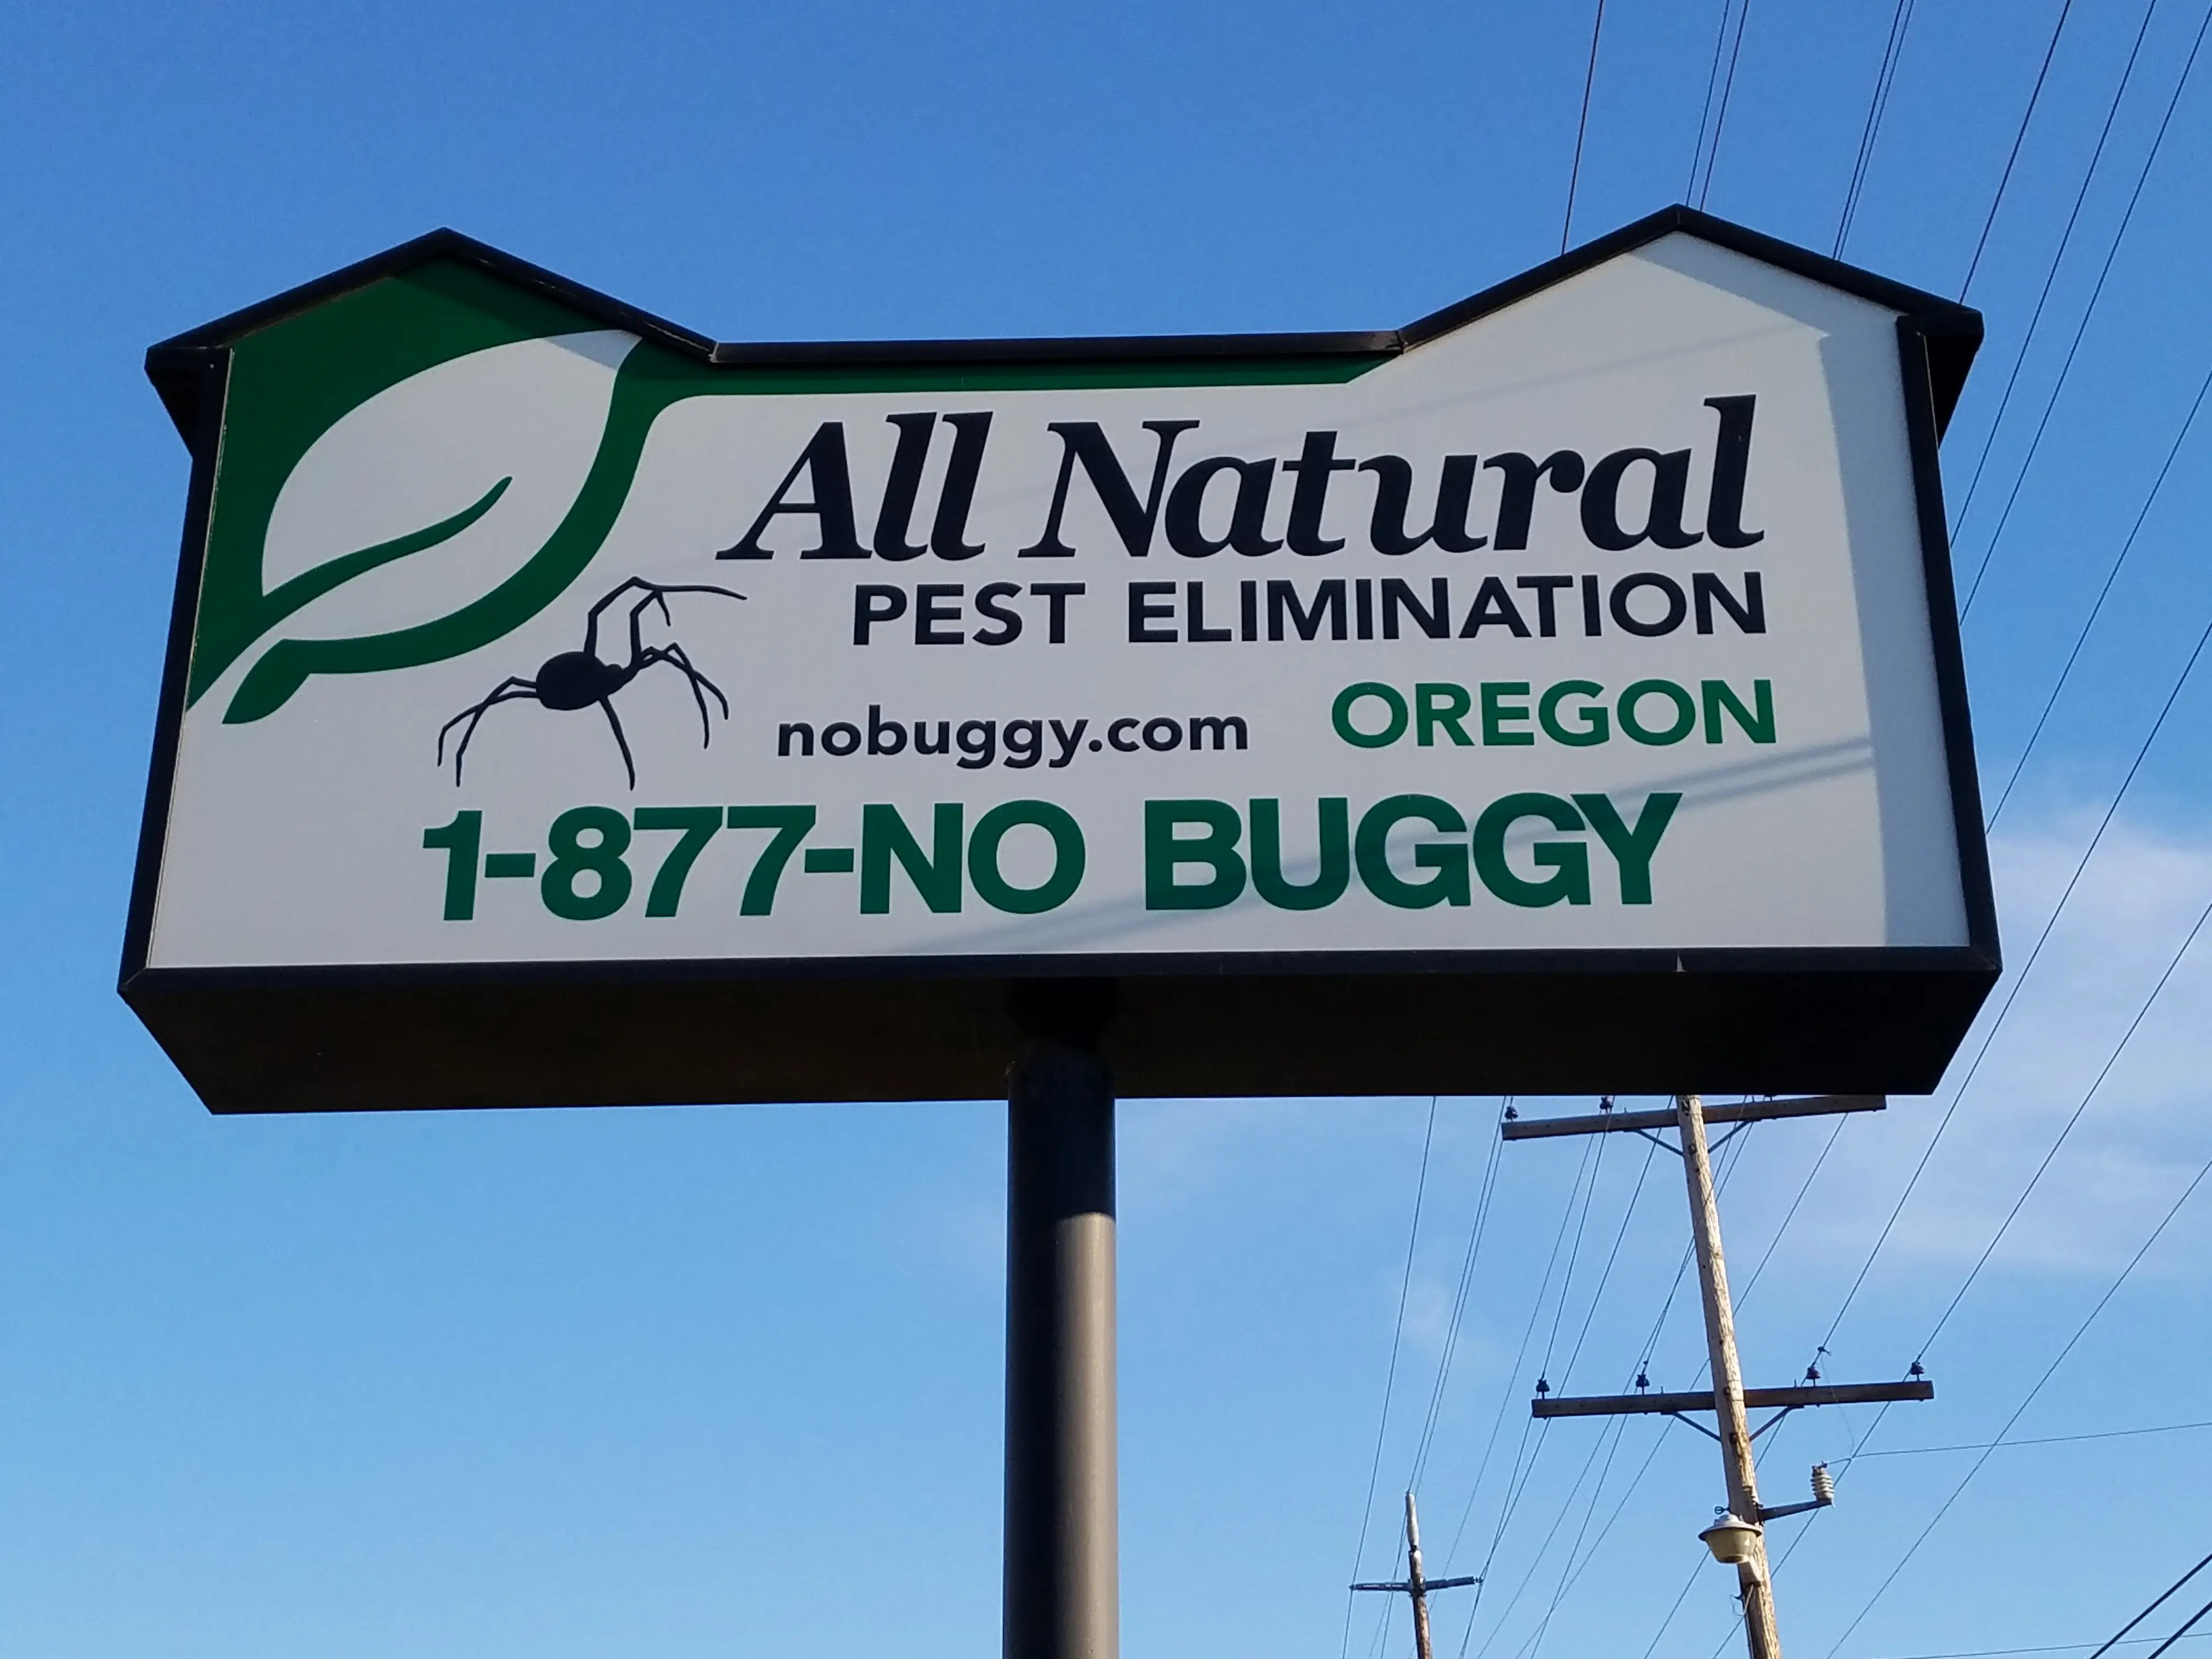 Encouragement We Currently Serve Following Contact Us All Pest Elimination Burns Pest Control Arizona Burns Pest Control Termites houzz 01 Burns Pest Control